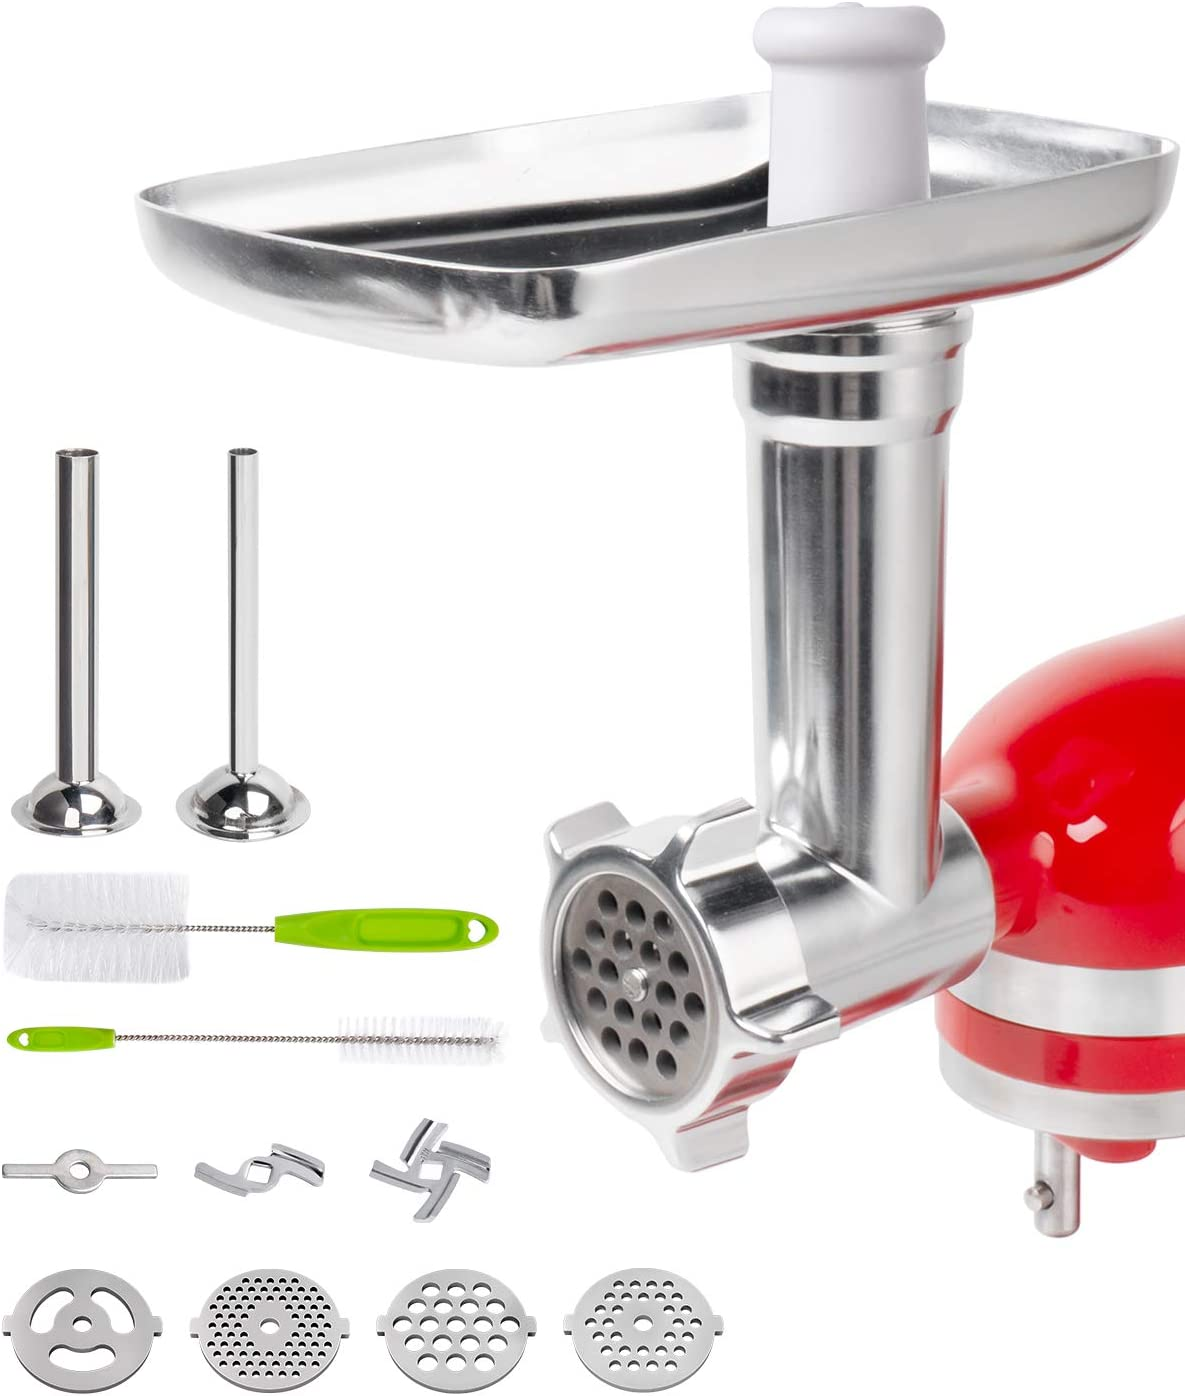 X Home Meat Grinder Attachment for KitchenAid, Metal Food Grinder Include 2 Sausage Stuffer Tubes and 3 Grinding Plates, Stand Mixer Stainless Steel Grinder